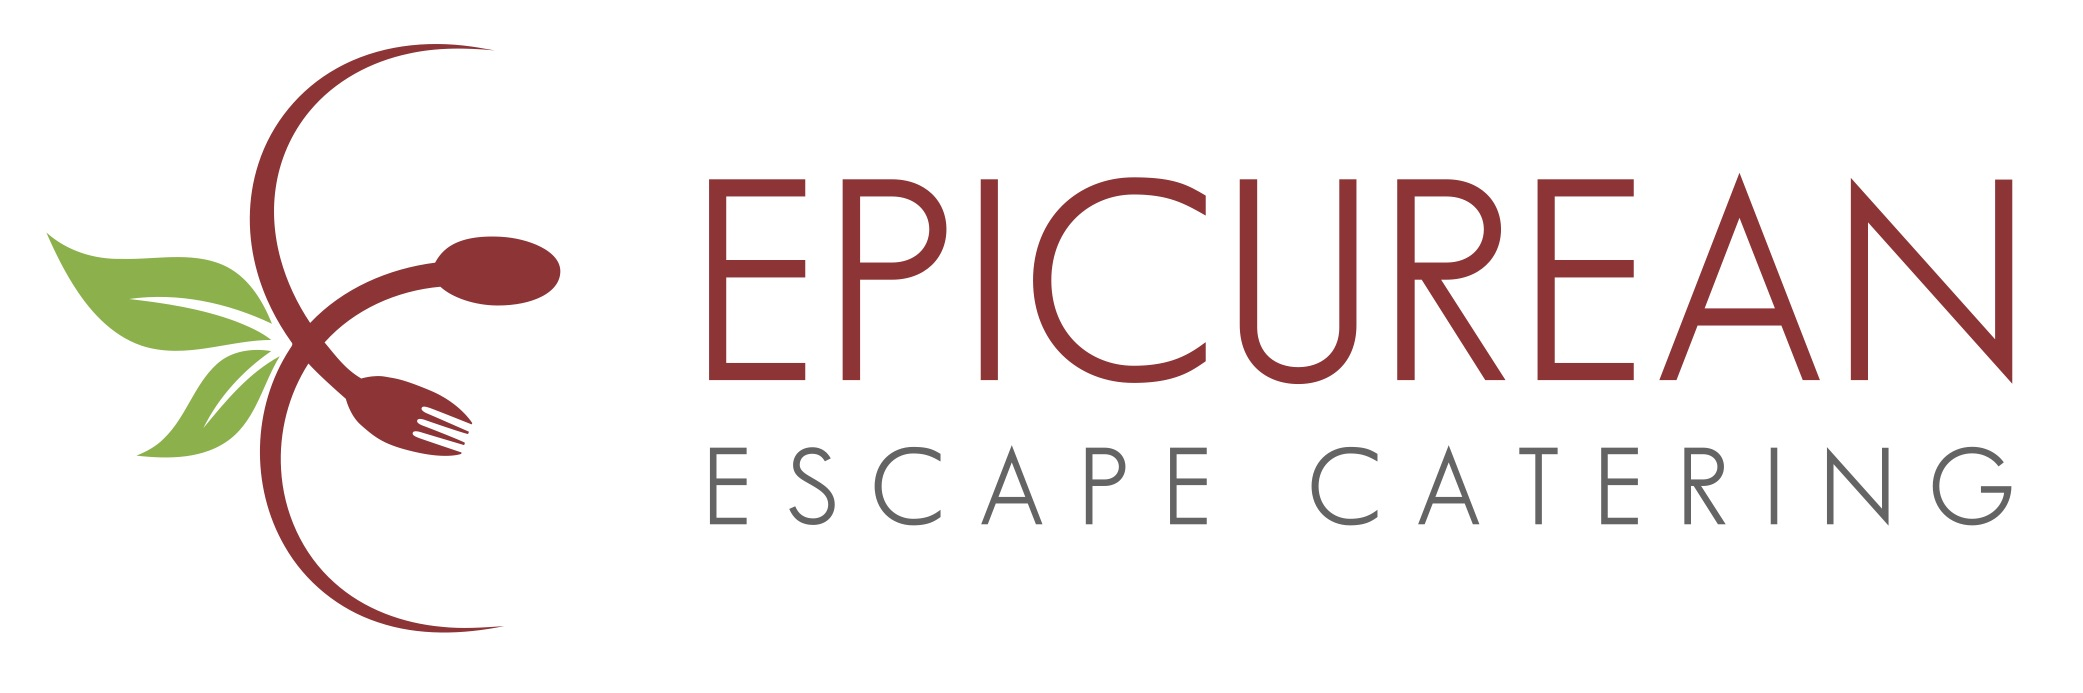 epicurean escape logo Use this one.jpg